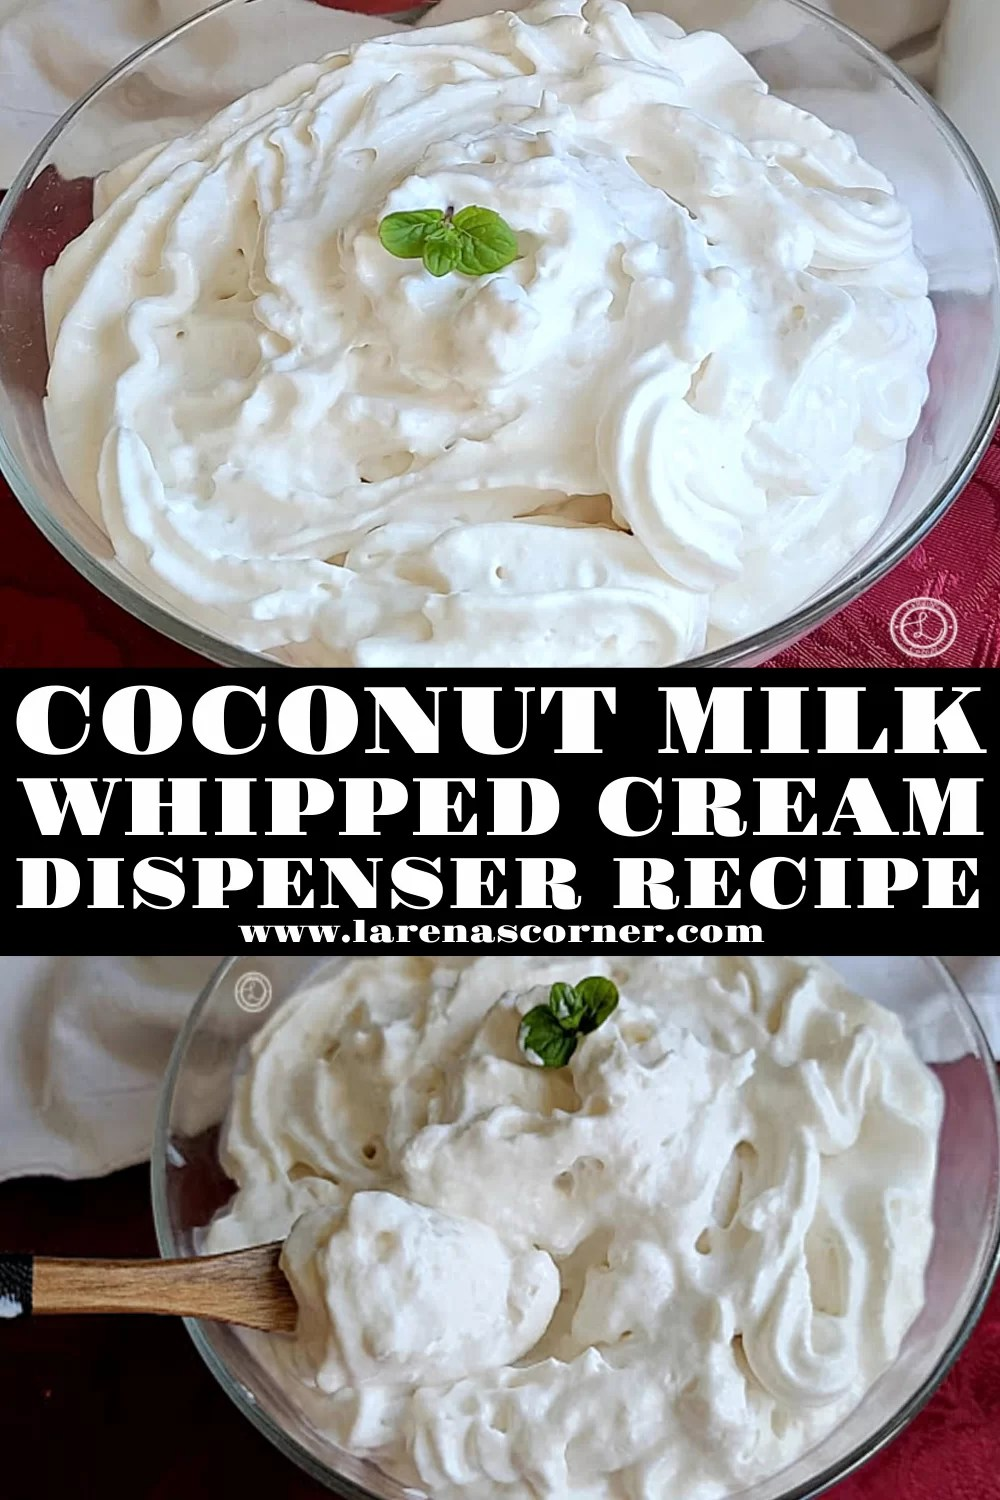 Coconut Milk Whipped Cream that was sprayed out of a whip cream dispenser and into a bowl. Two pictures.